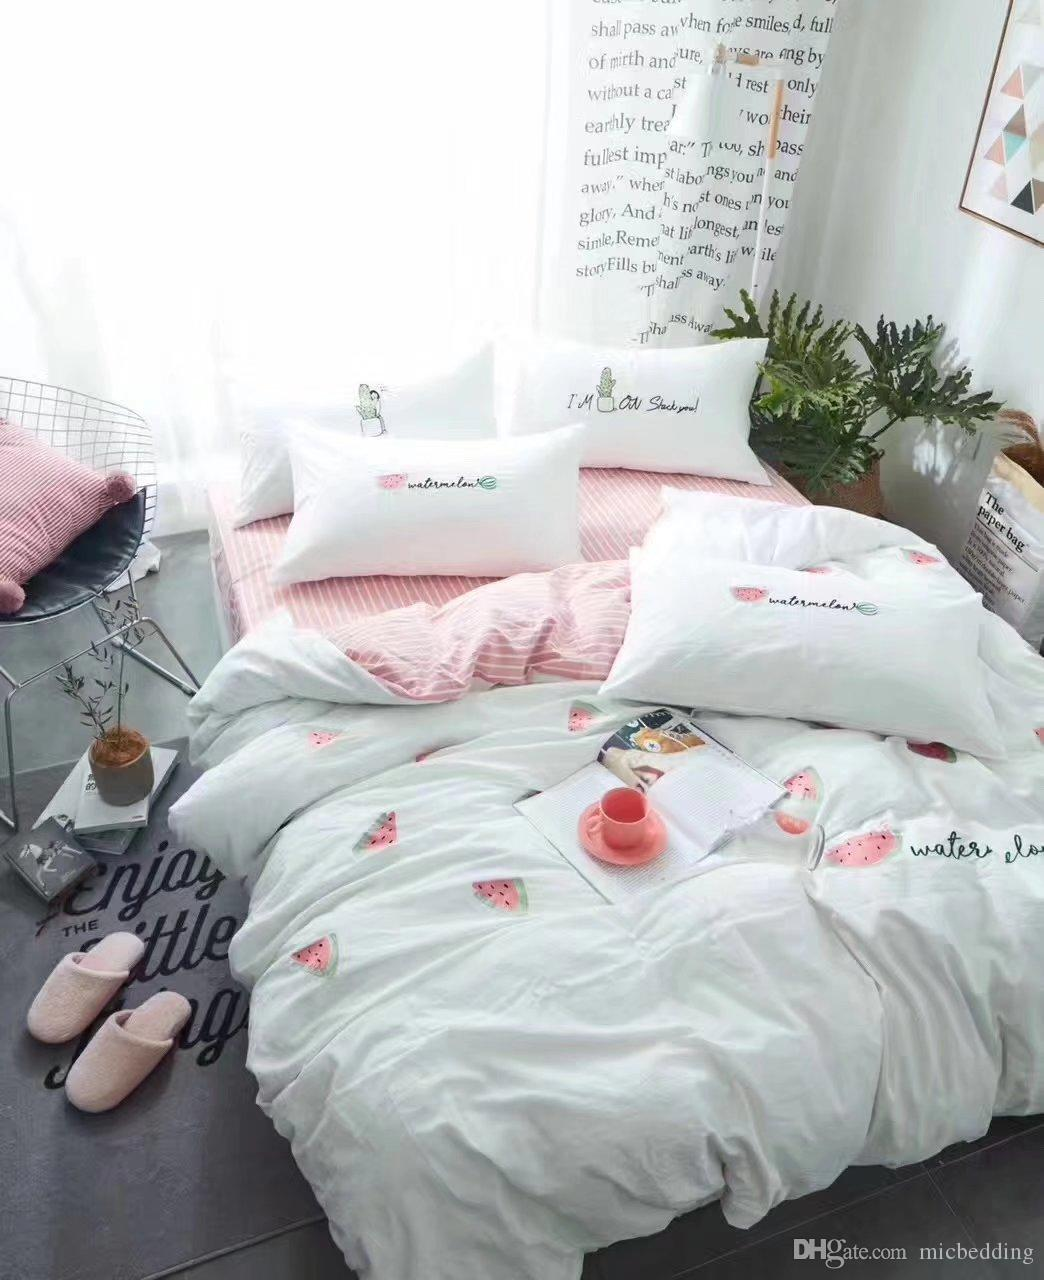 Yarn-dyed washed cotton with embroidry bed sheet bedding set home textiles manufacture supplier export quality 16002